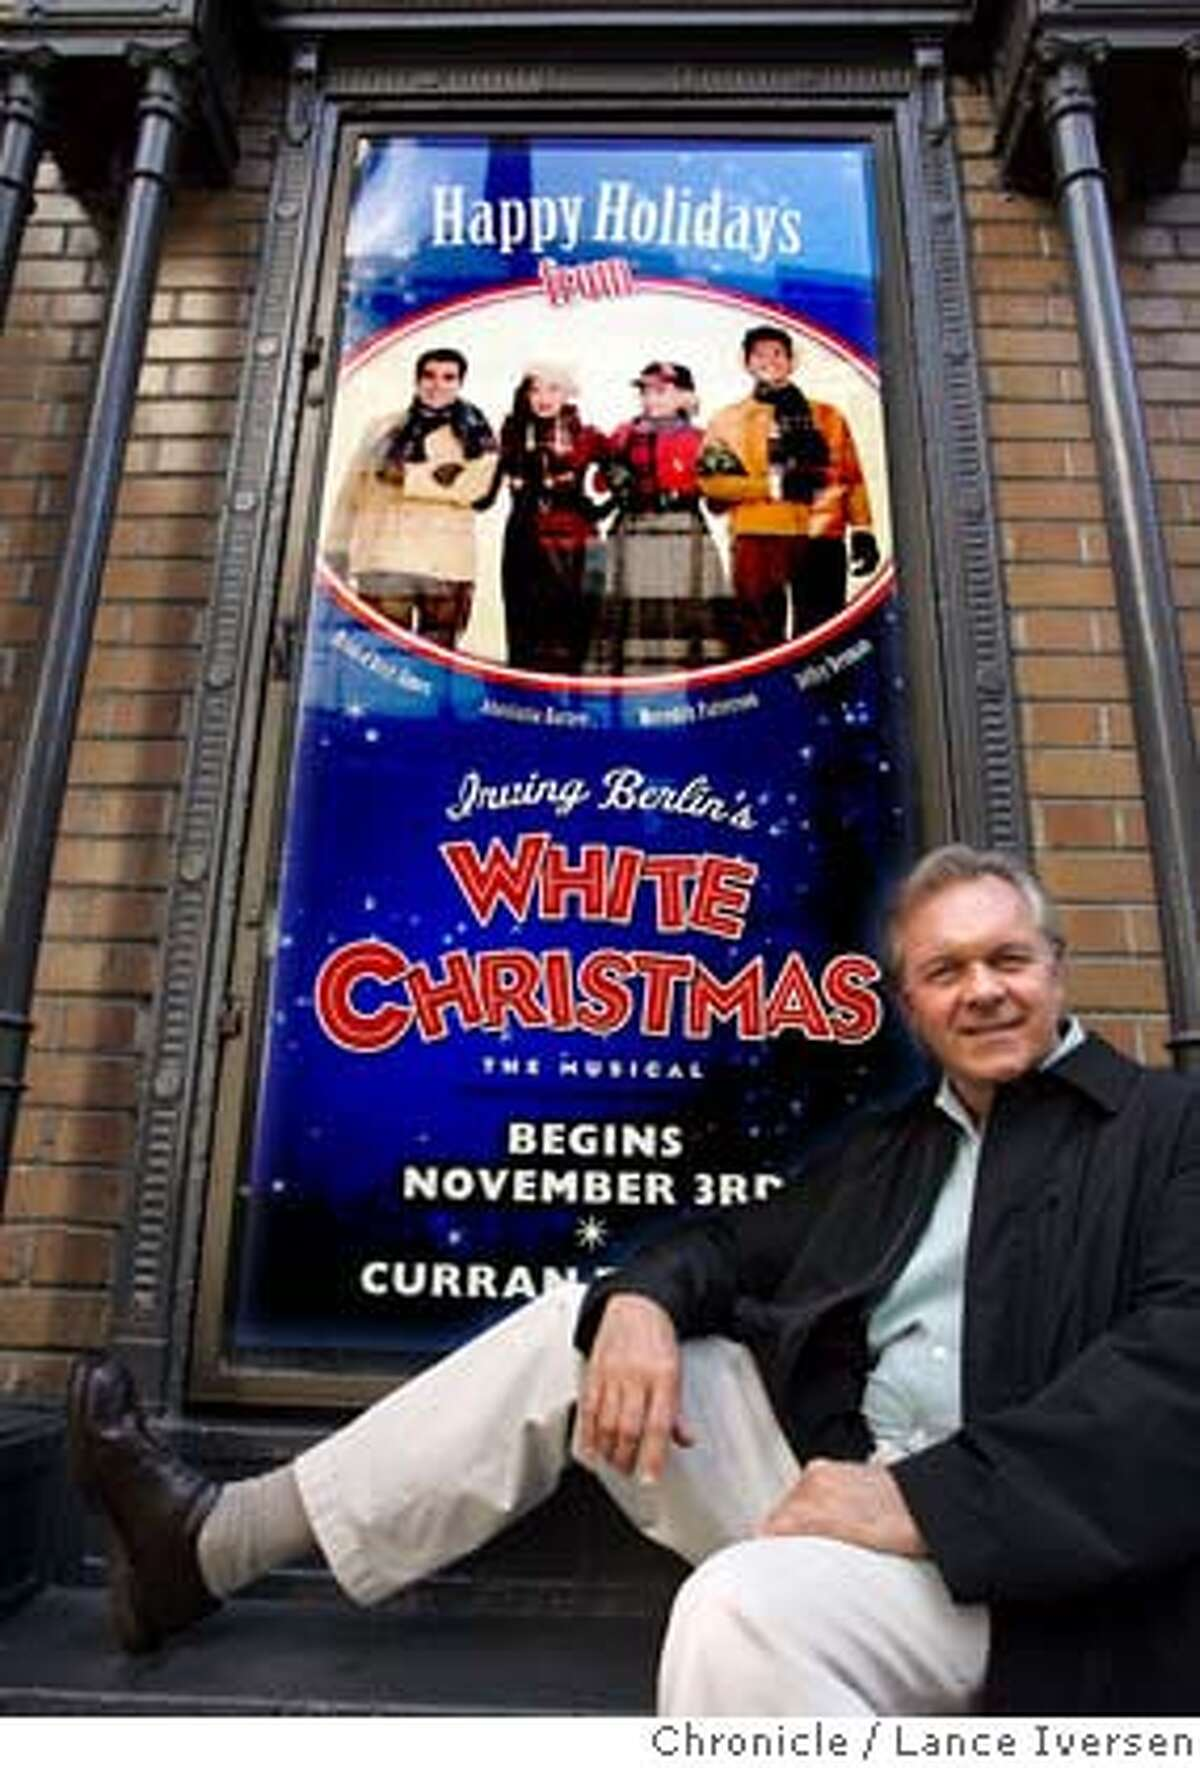 WHITECHRISTMAS_008.jpg_ Walter Bobbie, the director of the musical White Christmas poses in front of San Francisco's Curran Theater. By Lance Iversen/San Francisco Chronicle MANDATORY CREDIT PHOTOG AND SAN FRANCISCO CHRONICLE. Datebook#Datebook#Chronicle#11/11/2004#ALL#Advance##0422452980